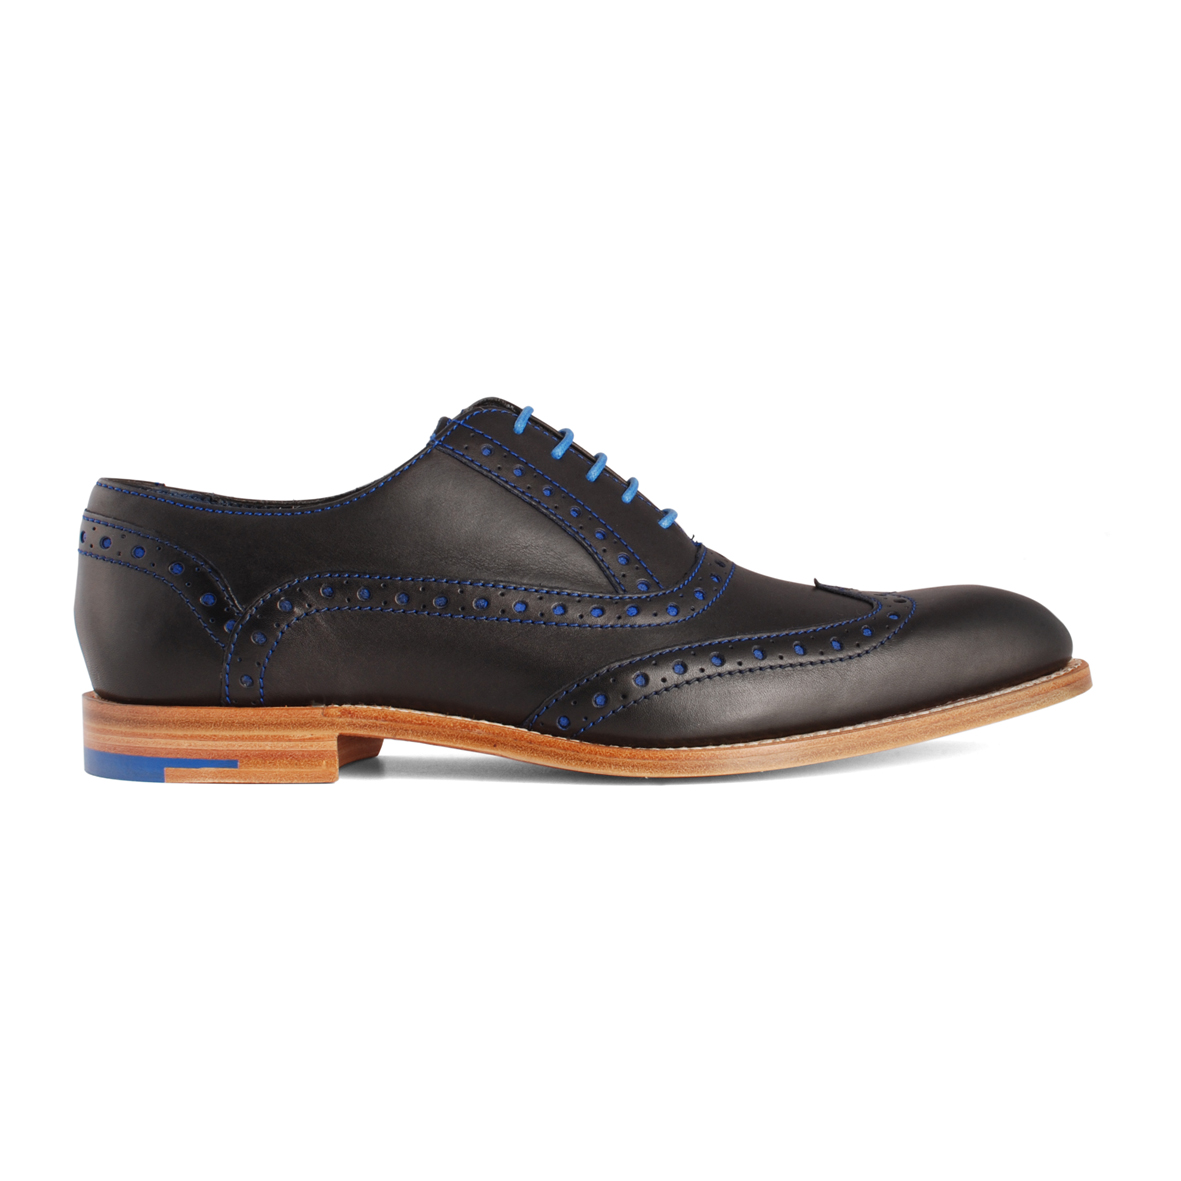 Barker Grant Navy Calf shoes